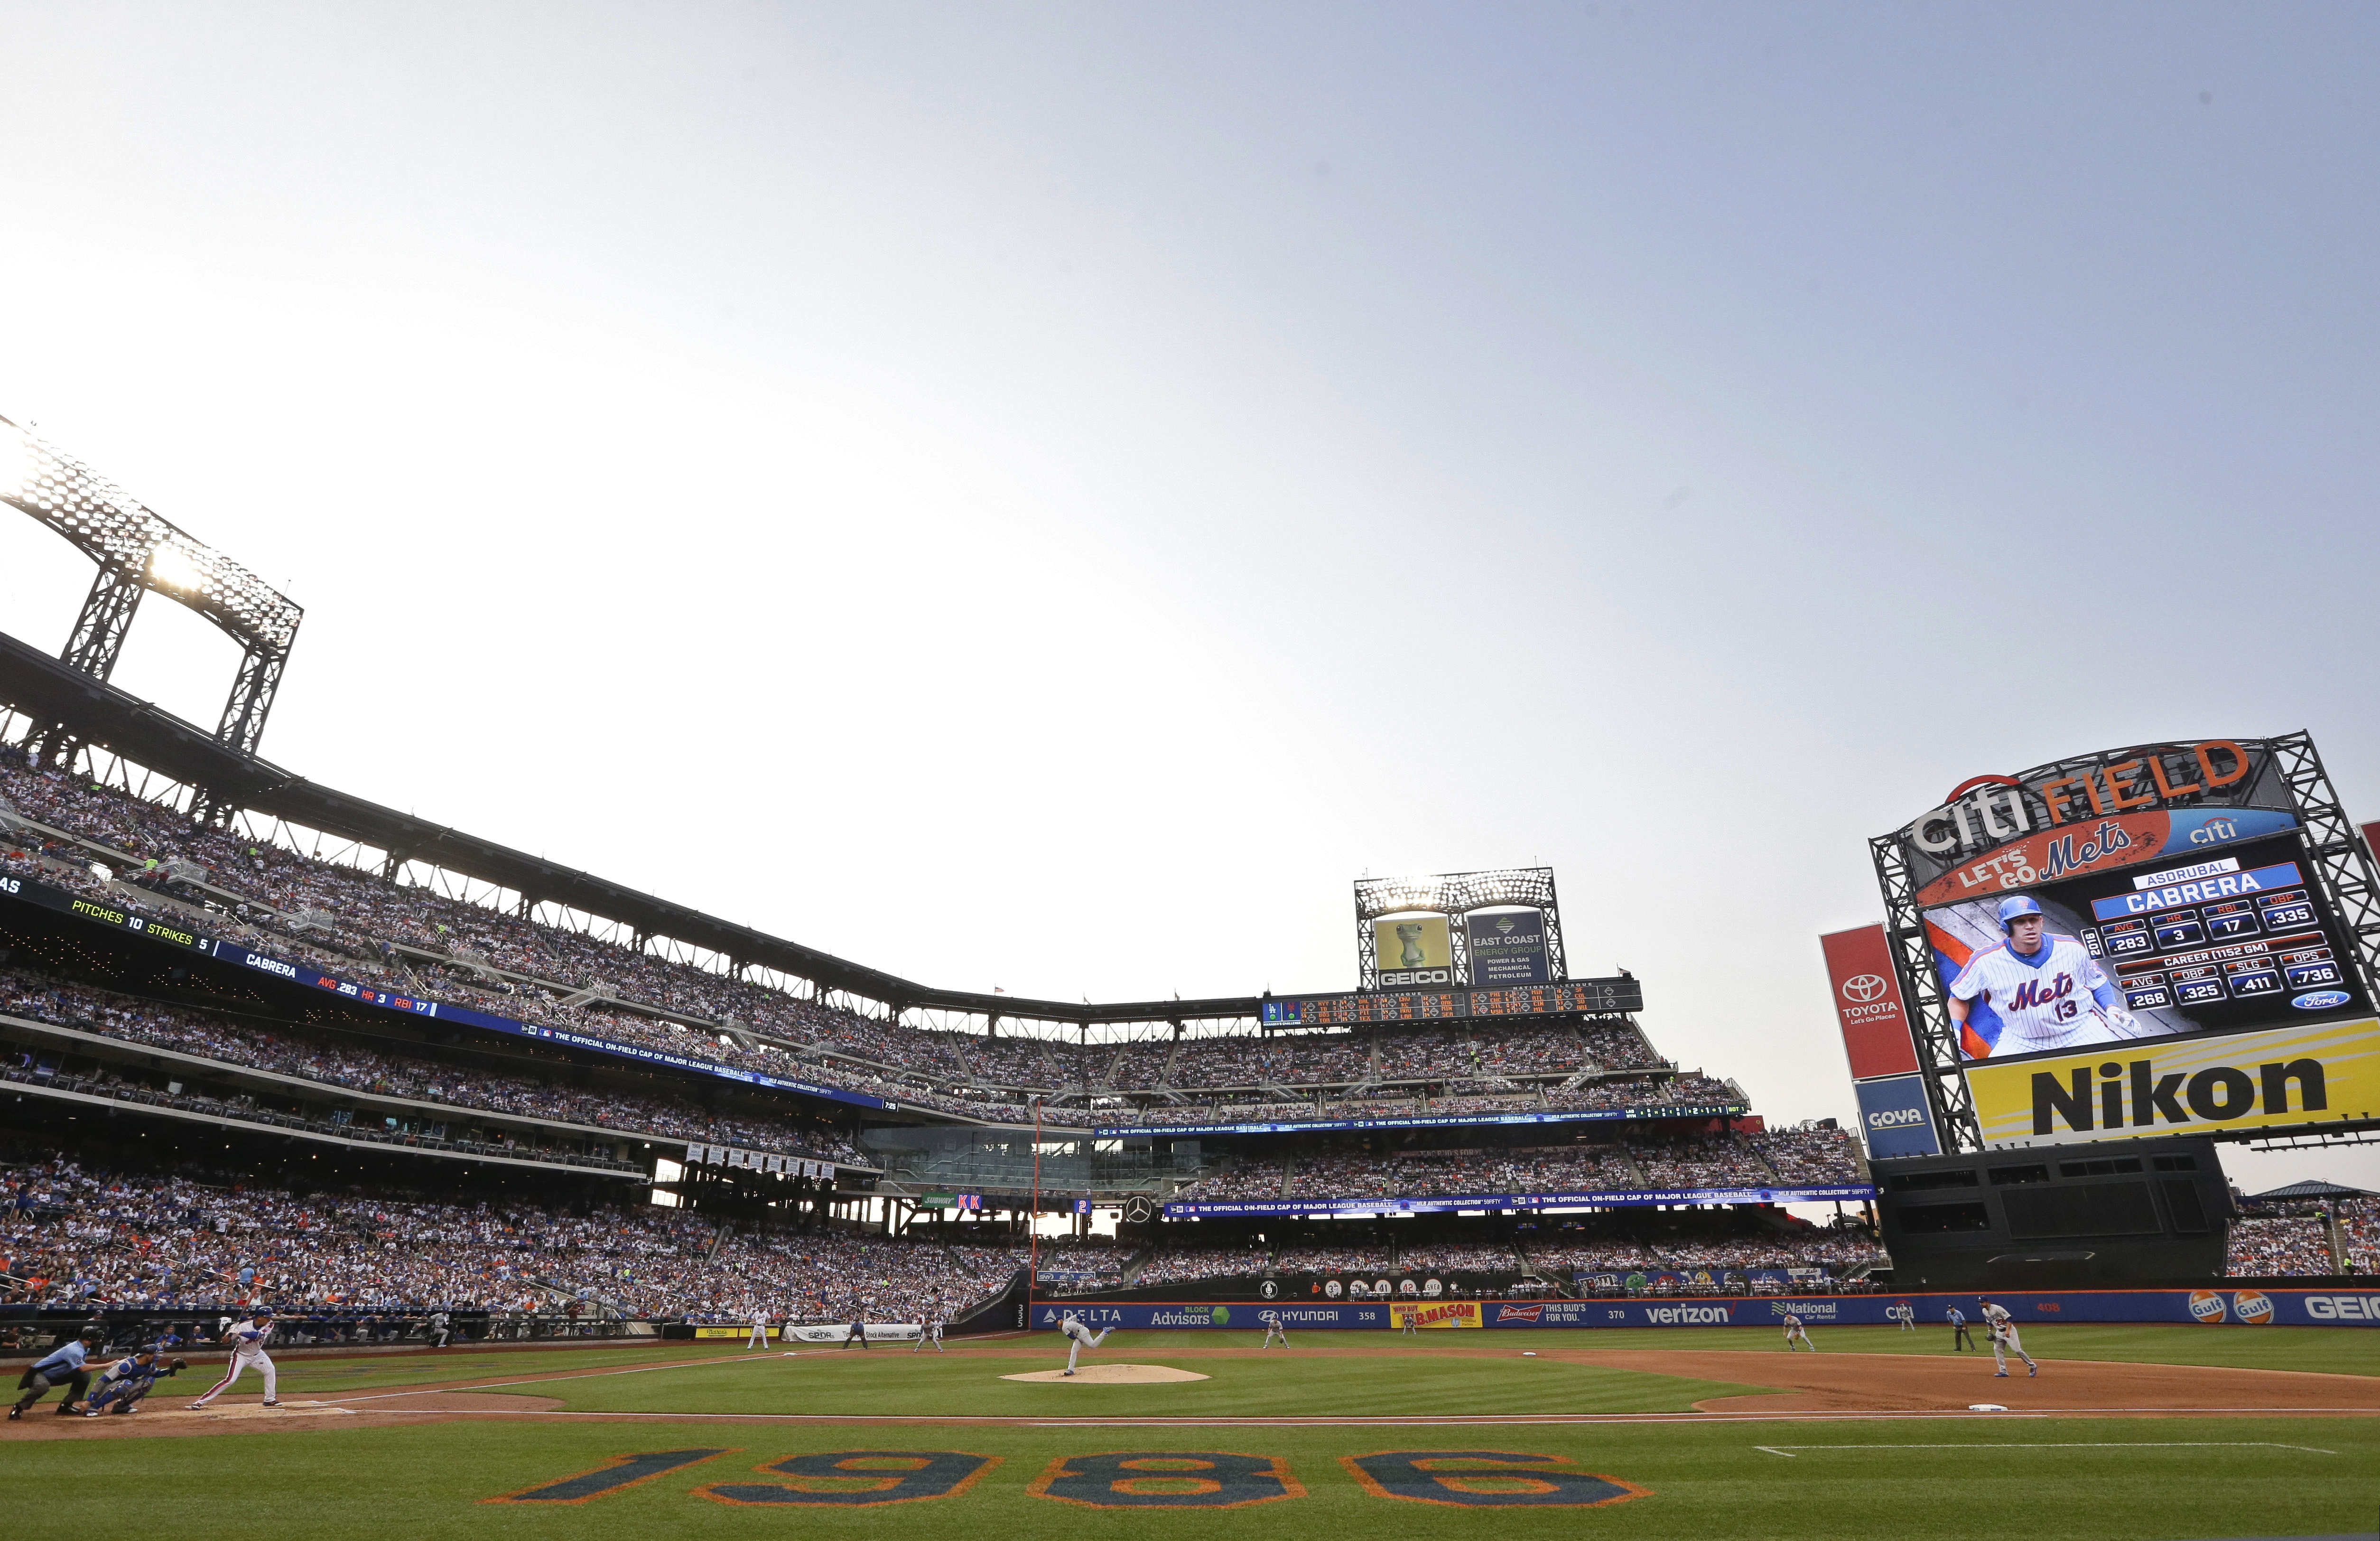 Los Angeles Dodgers' Julio Arias delivers a pitch to New York Mets' Asdrubal Cabrera during the first inning of a baseball game Friday, May 27, 2016, in New York. (AP Photo/Frank Franklin II)